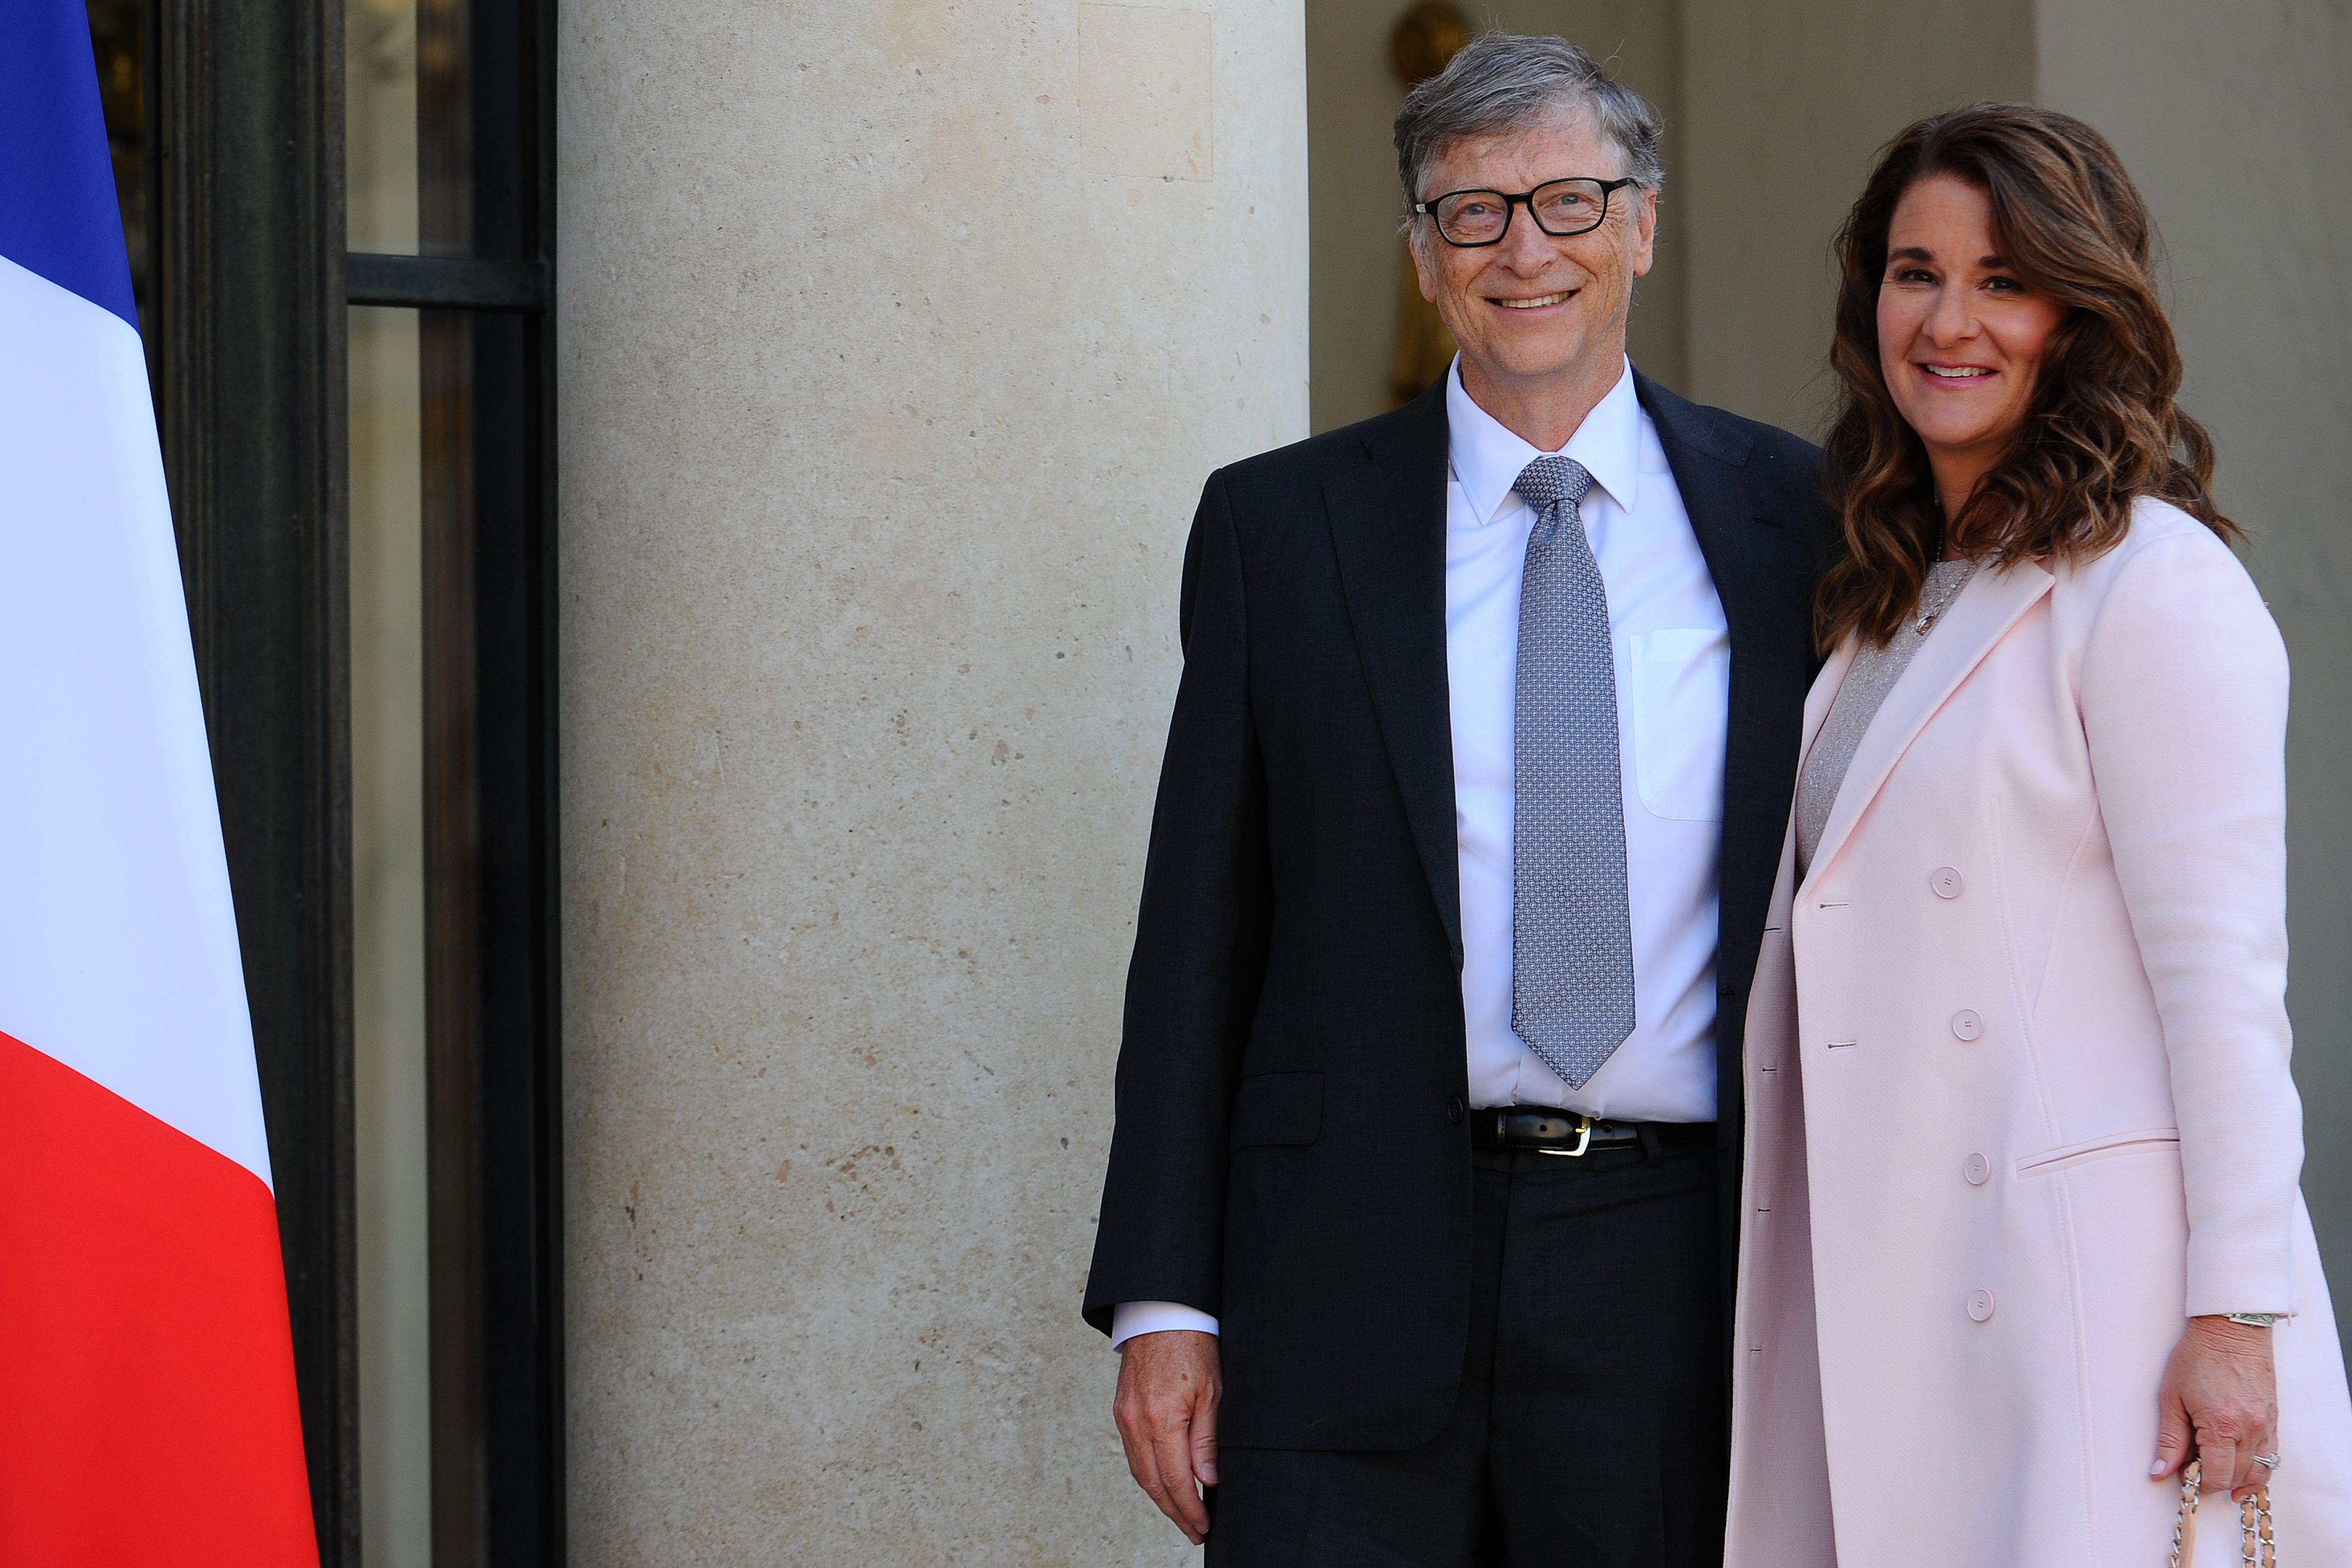 PARIS, FRANCE - APRIL 21: Bill and Melinda Gates pose in front of the Elysee Palace before receiving the award of Commander of the Legion of Honor by French President Francois Hollande on April 21, 2017 in Paris, France. French President Fran?ois Hollande awarded the Honorary Commander of the Legion of Honor to Bill and Melinda Gates as the highest national award under the partnership between France and the Bill & Melinda Gates Foundation, which have been unavoidable actors for several years Of development assistance and health in the world. (Photo by Frederic Stevens/Getty Images)